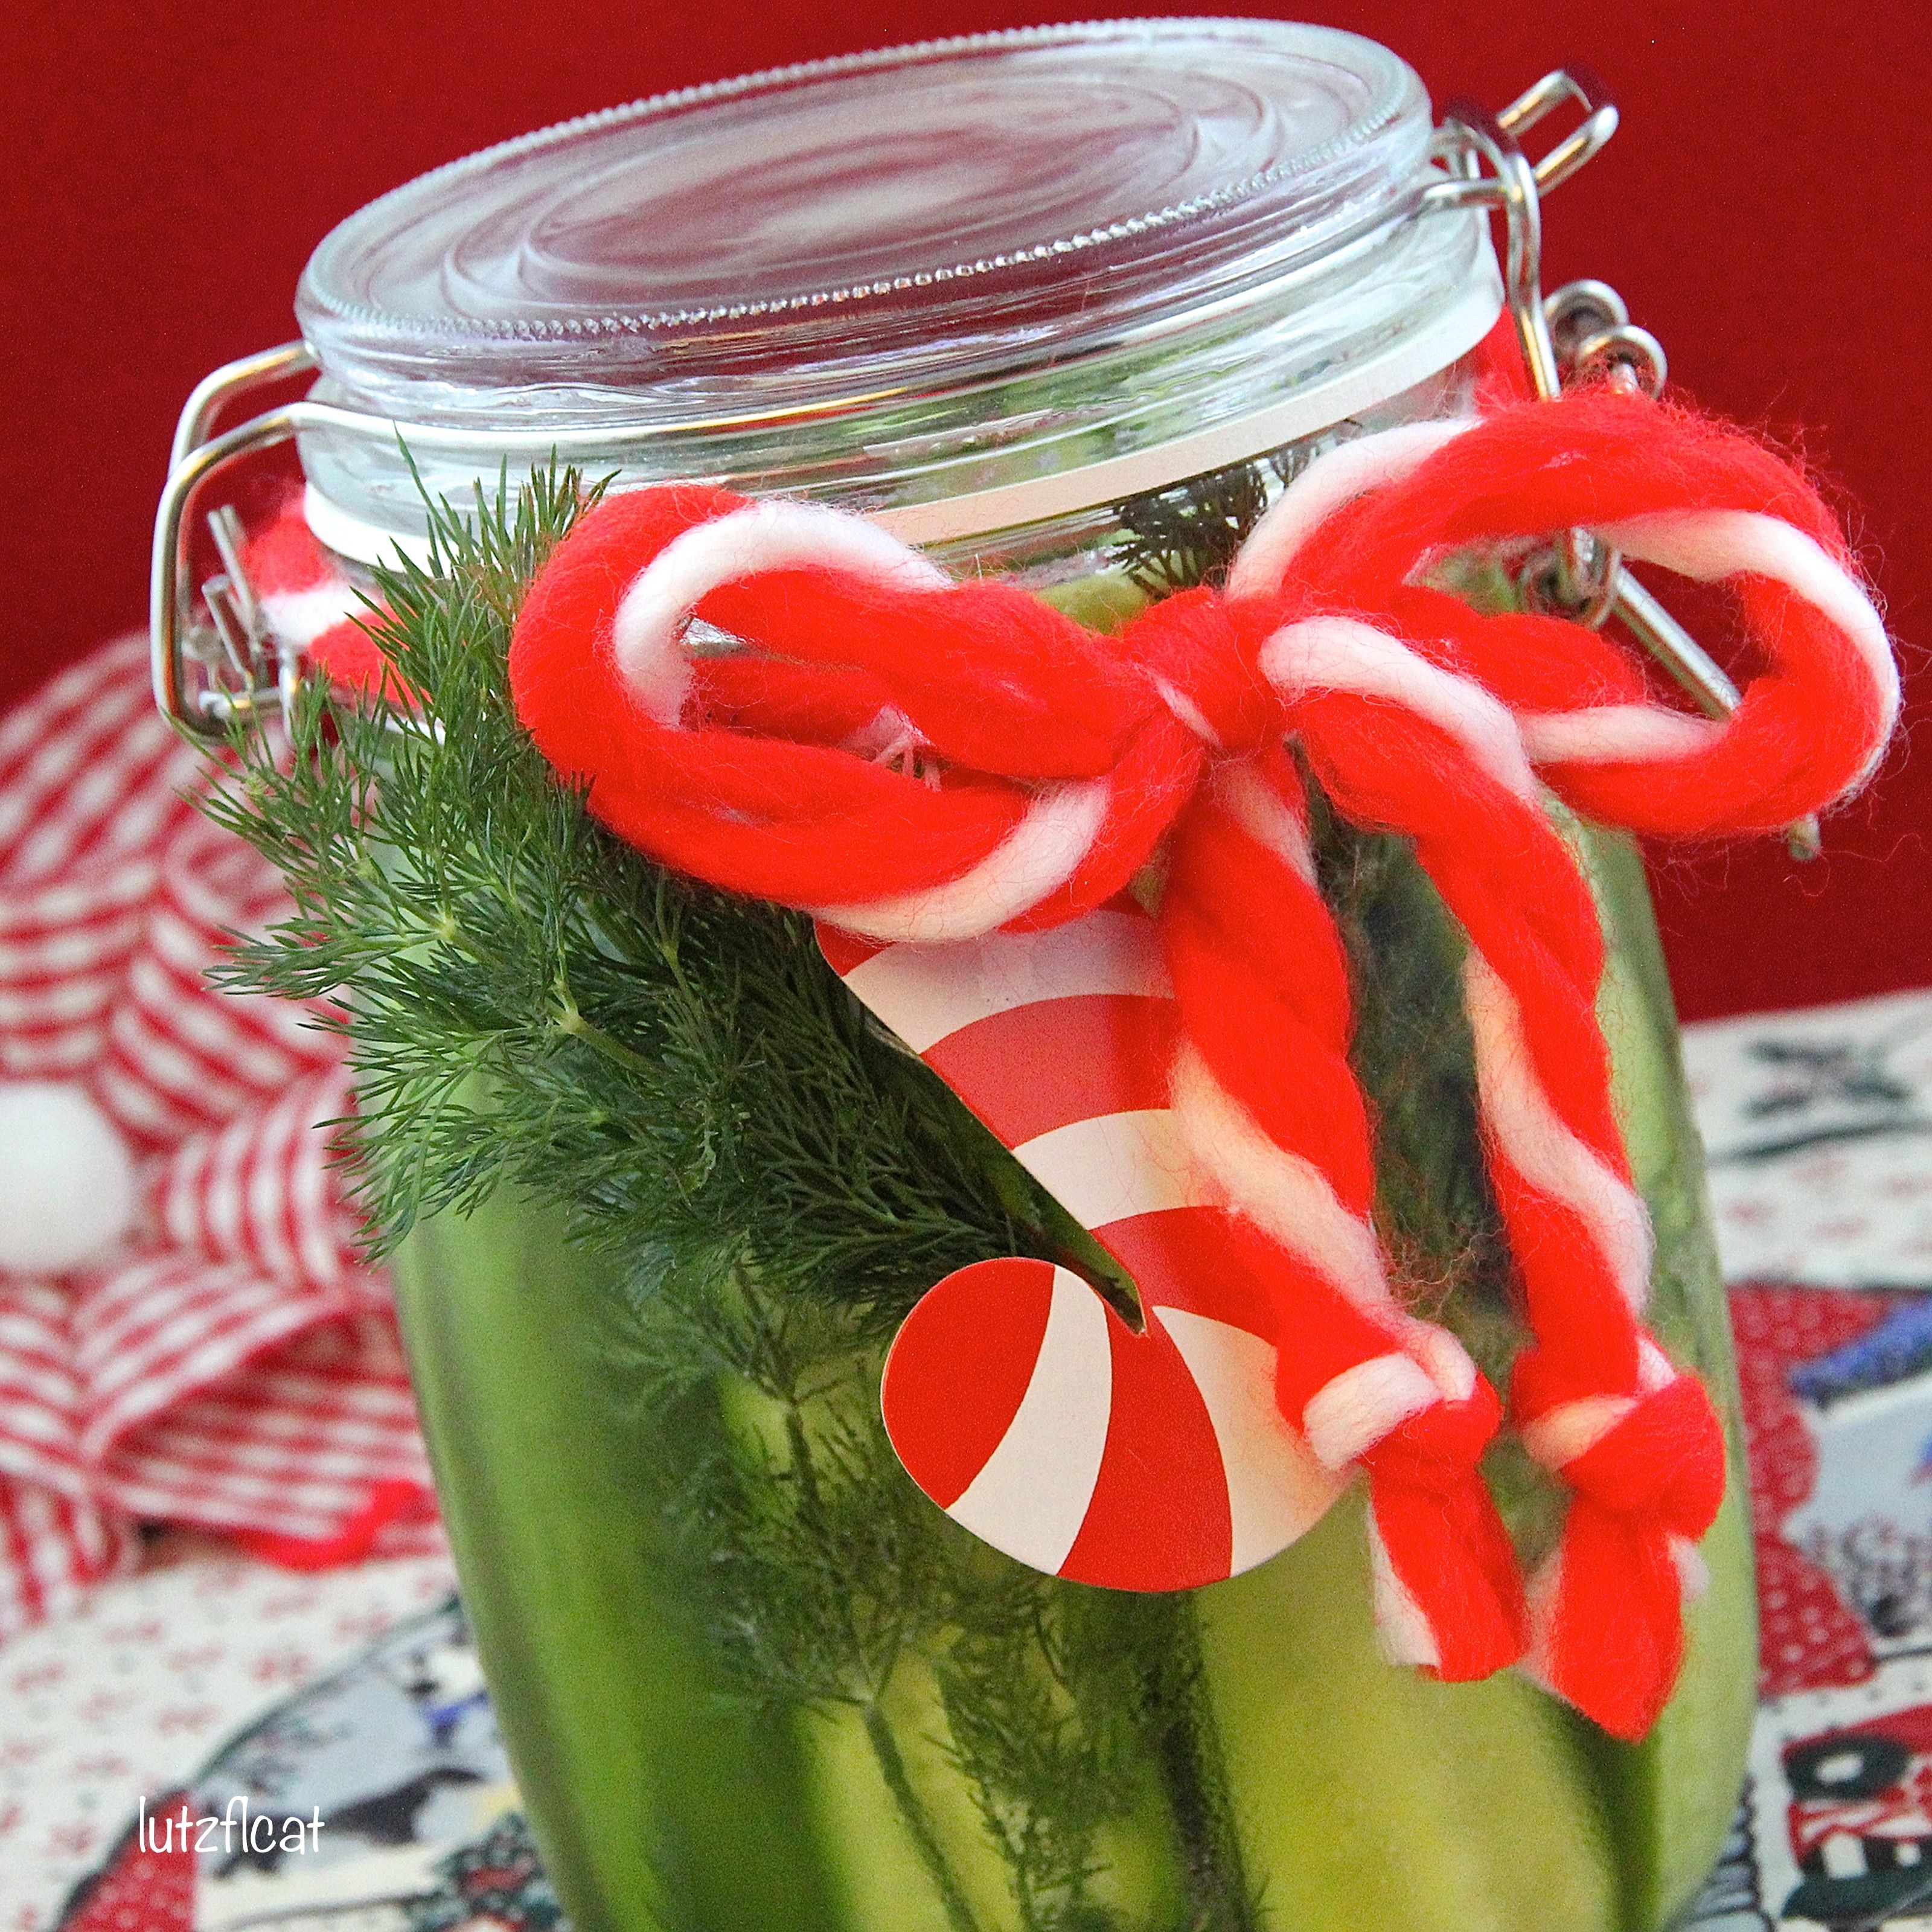 Refrigerator Dill Pickles are crunchy and fresh and would make a great gift if you want to step outside the cookies and candy category this year.  And nobody will ever know how simple they are to make.   #HomemadeHoliday